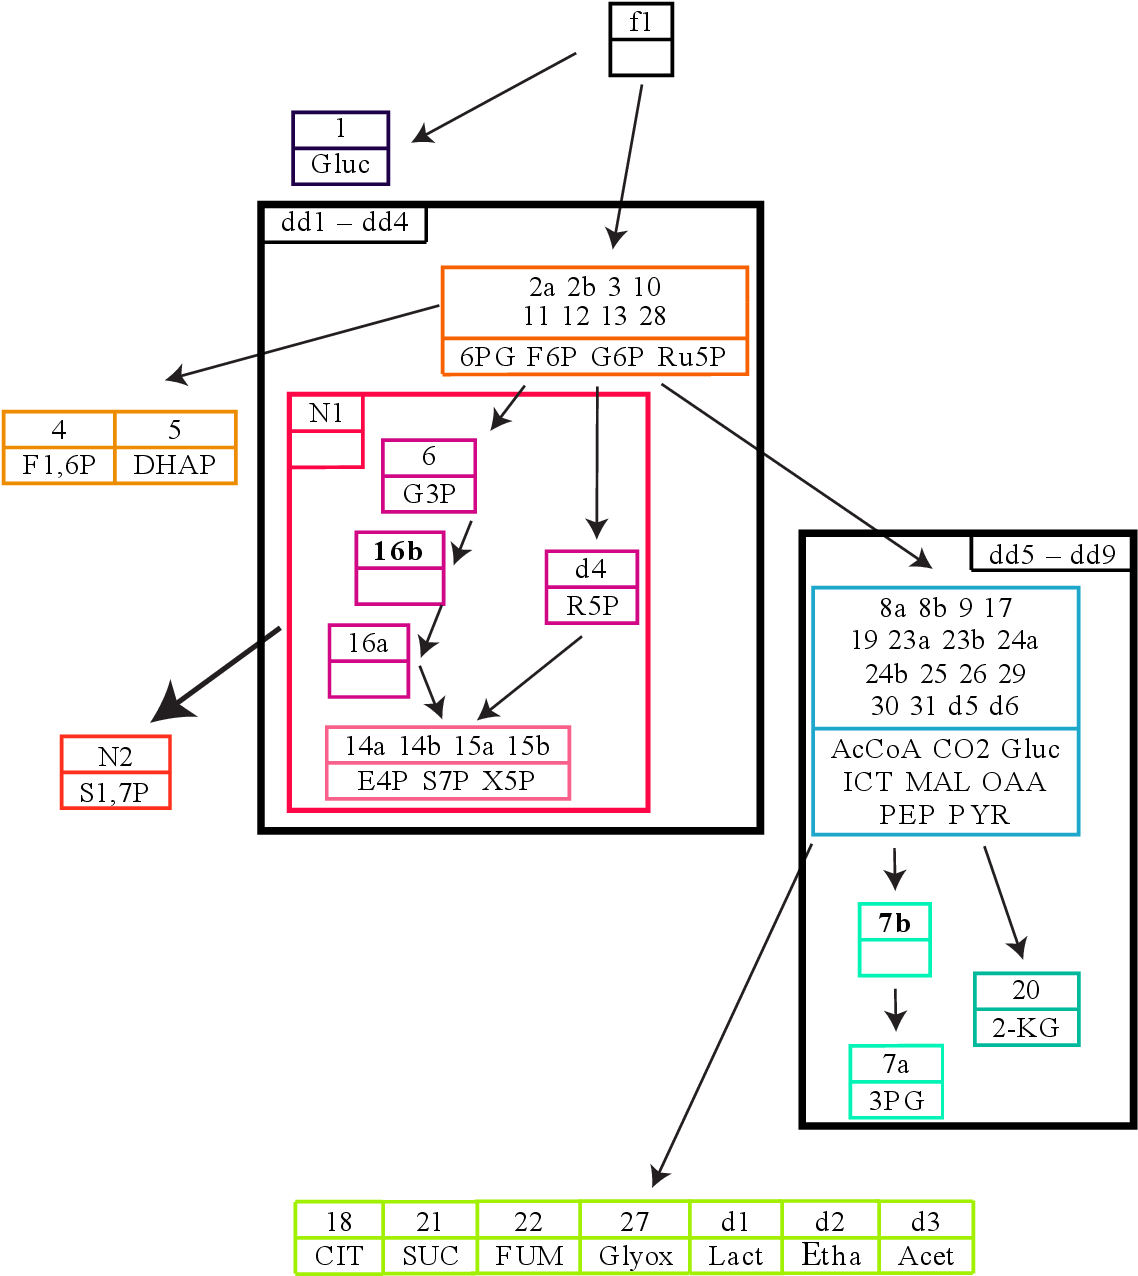 hight resolution of figure 8 7 the full flux influence graph of the tca cycle model invariants a